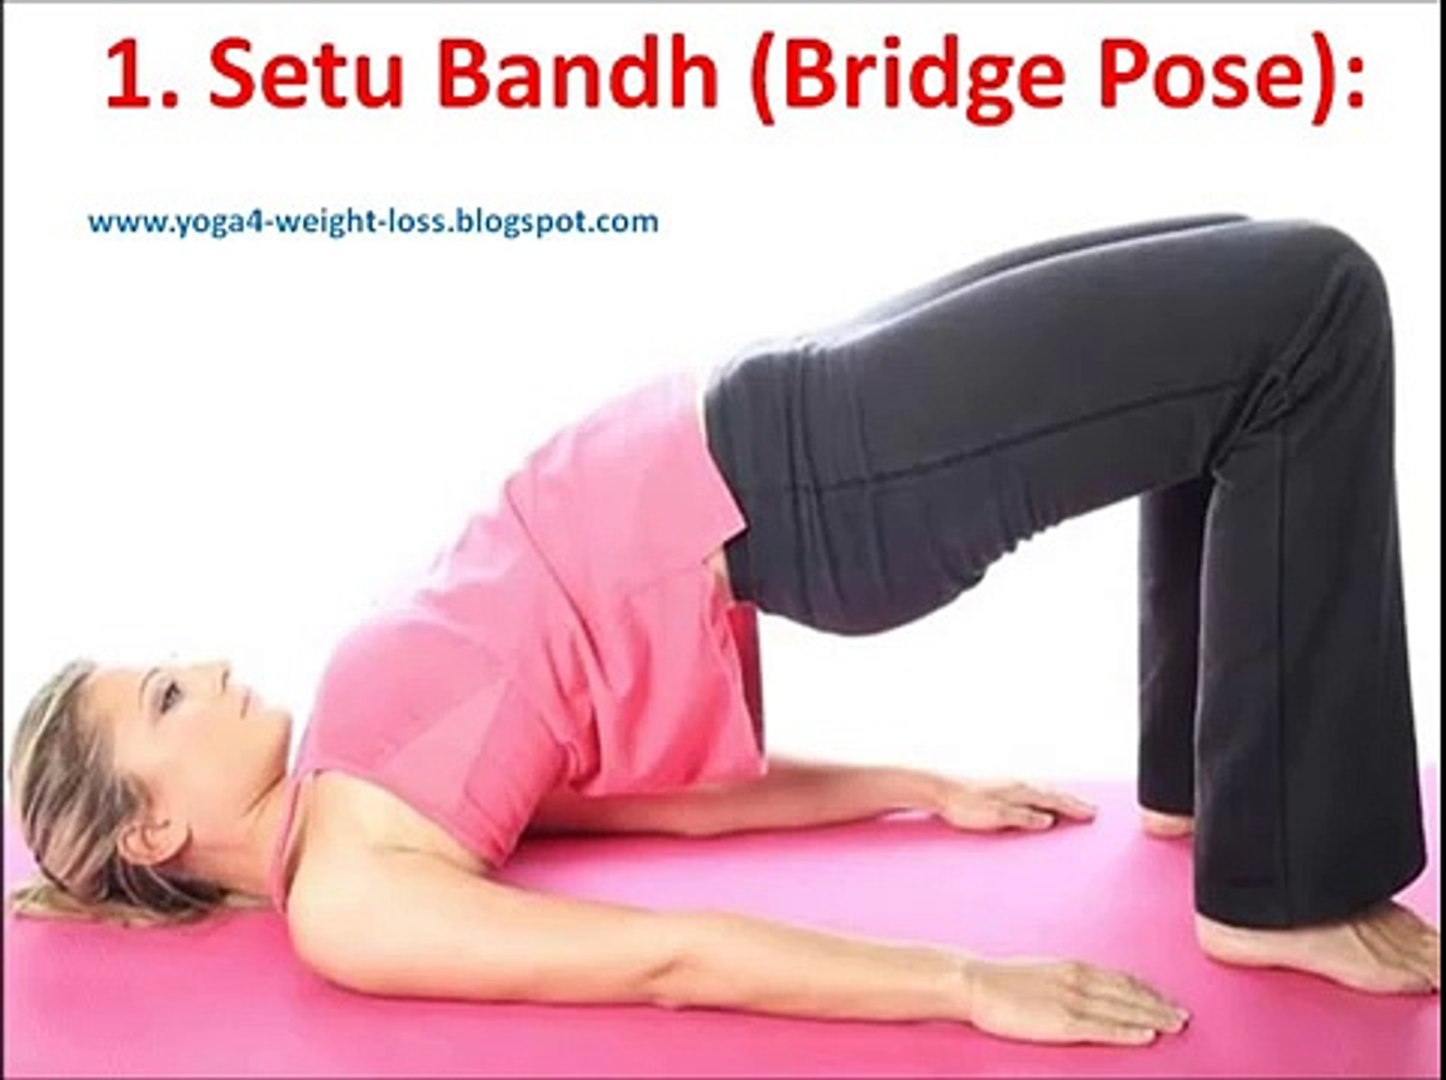 Yoga asanas for losing weight naturally and quickly - video